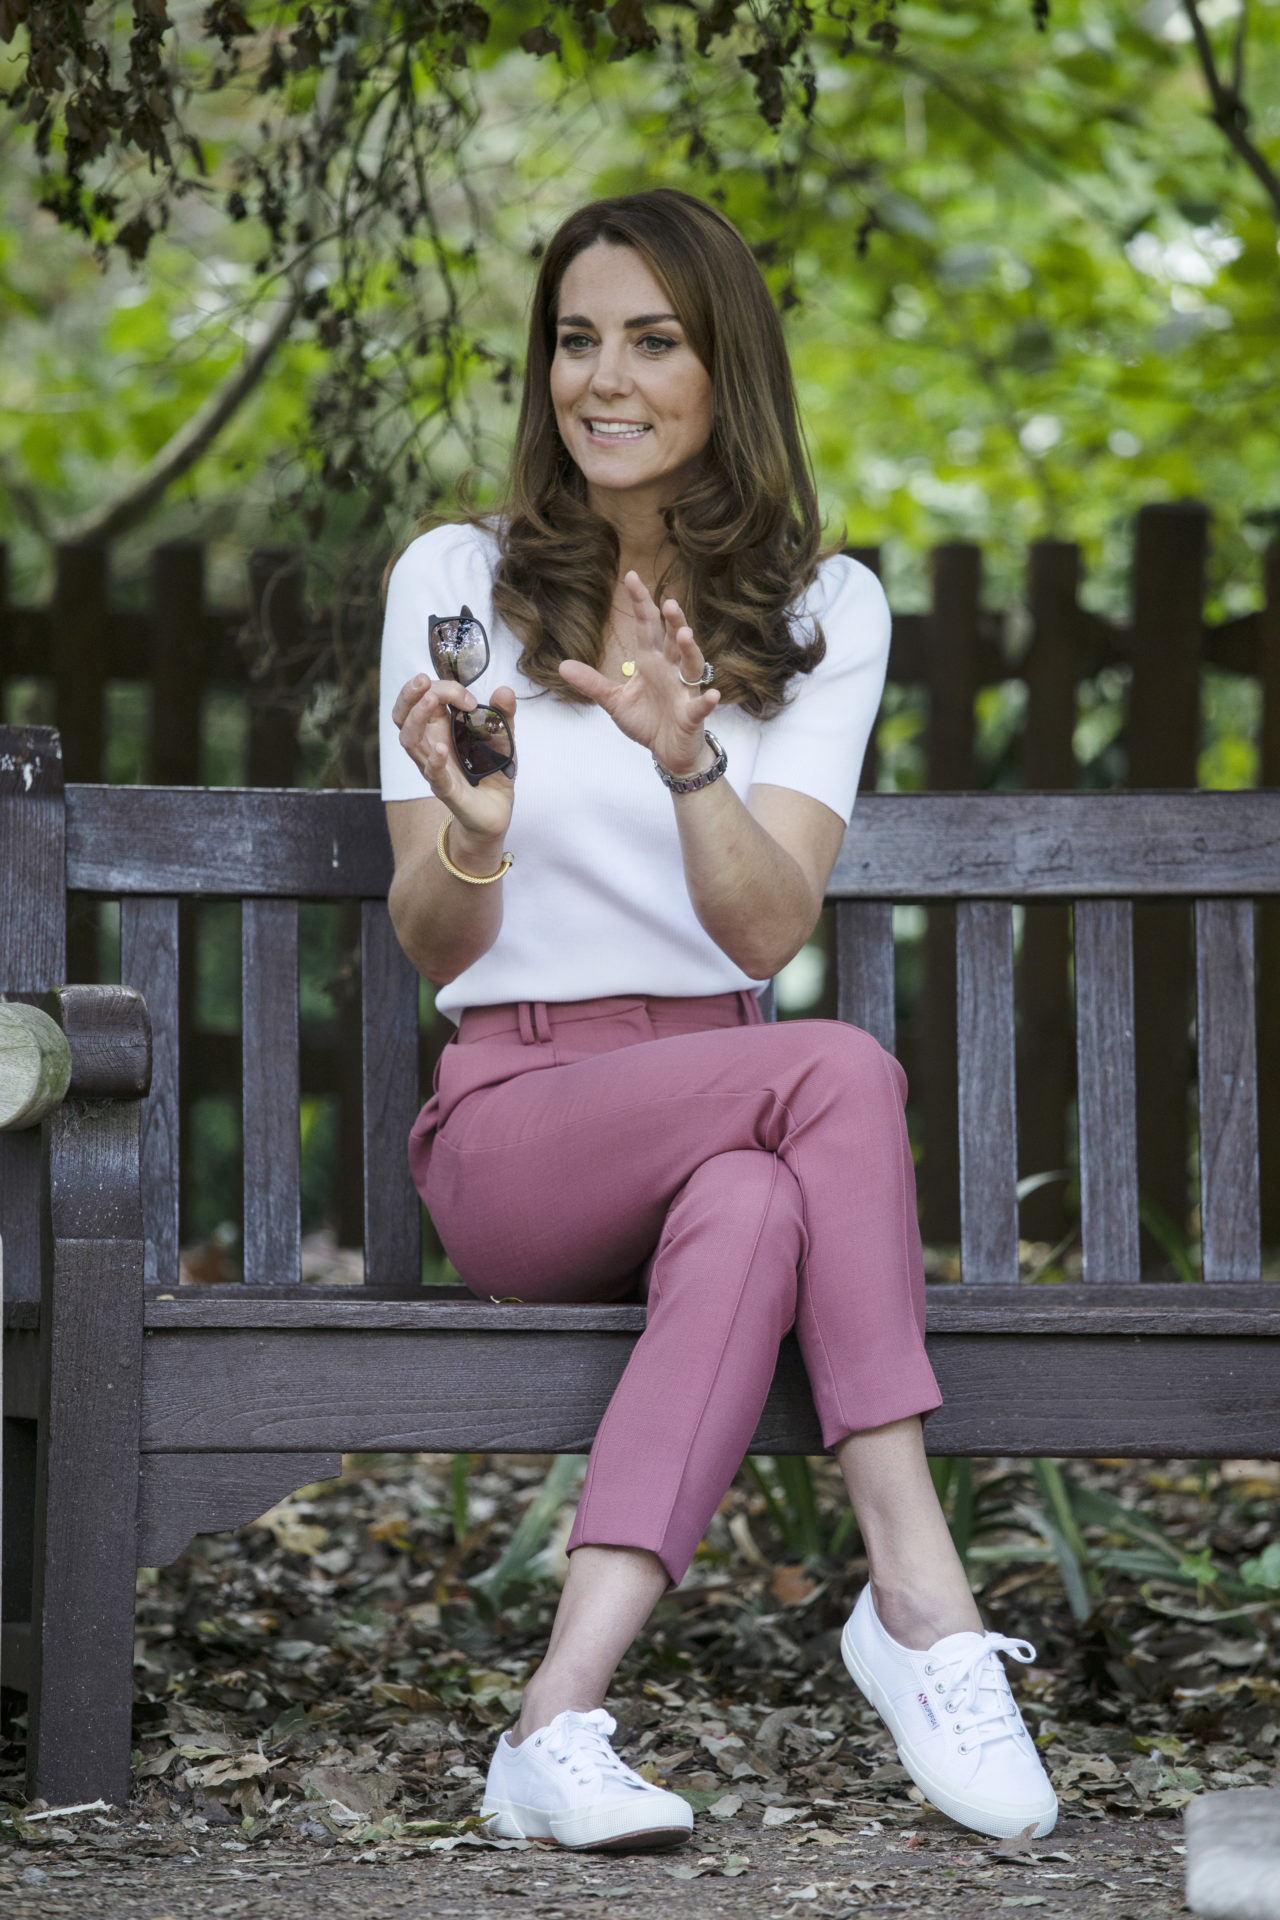 uchess Kate stepped out on Sept. 22 to speak with parents at Battersea Park in London about how they are supporting each other during the coronavirus pandemic